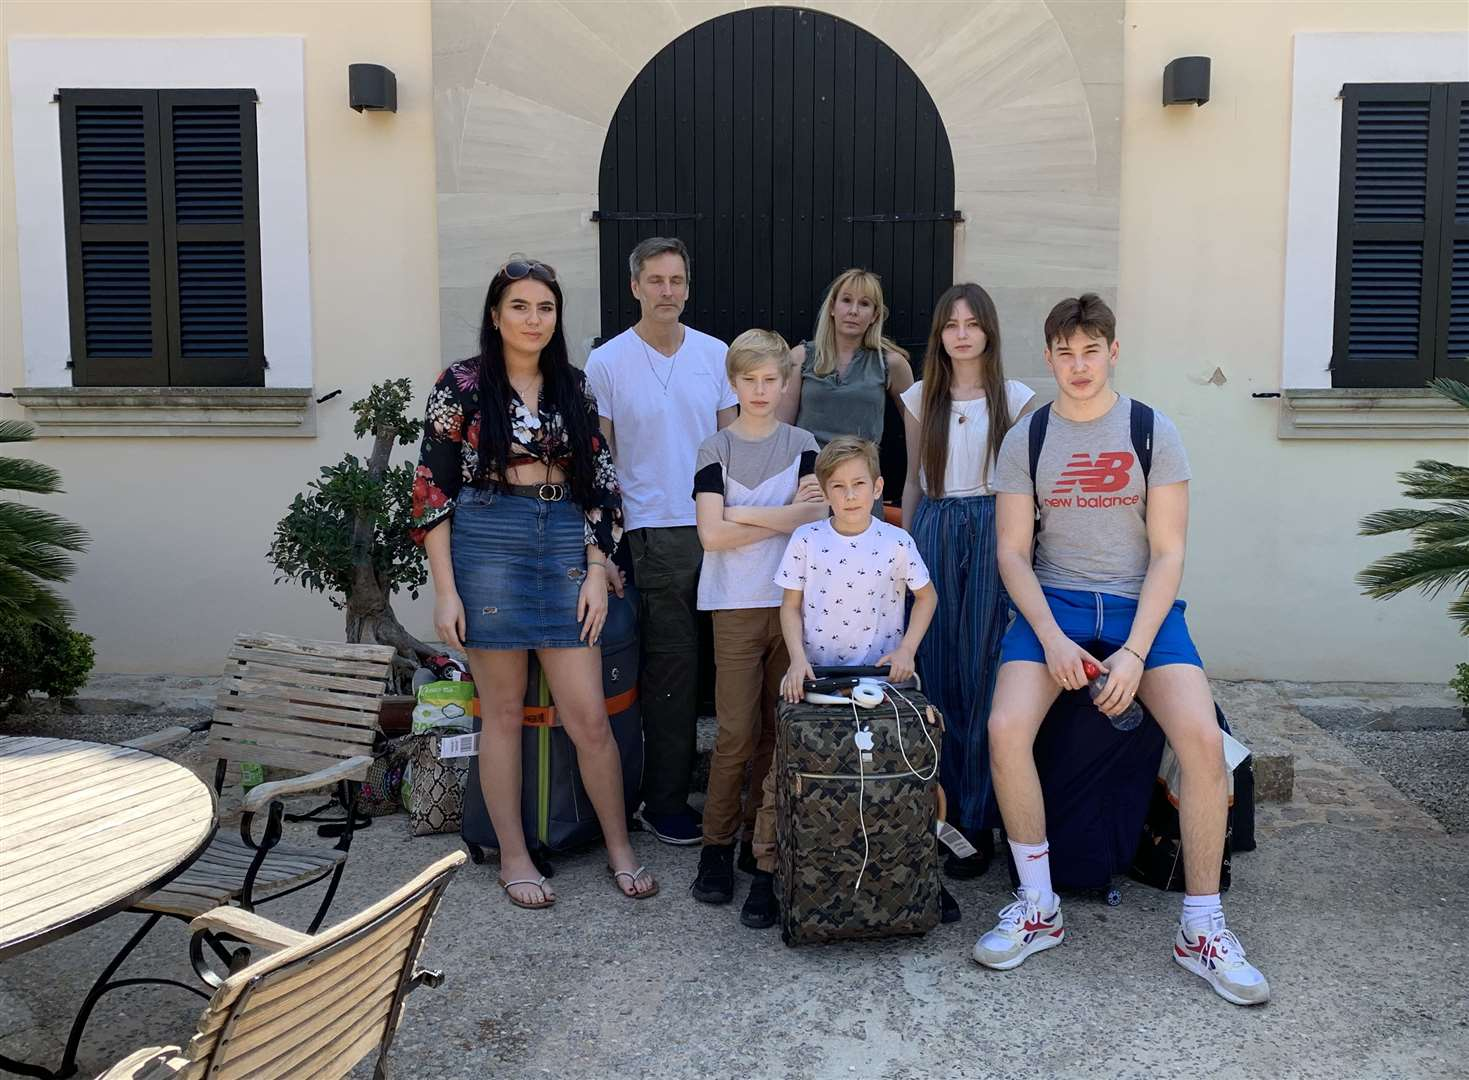 Angus Kennedy and his family outside the villa they expected to be renting